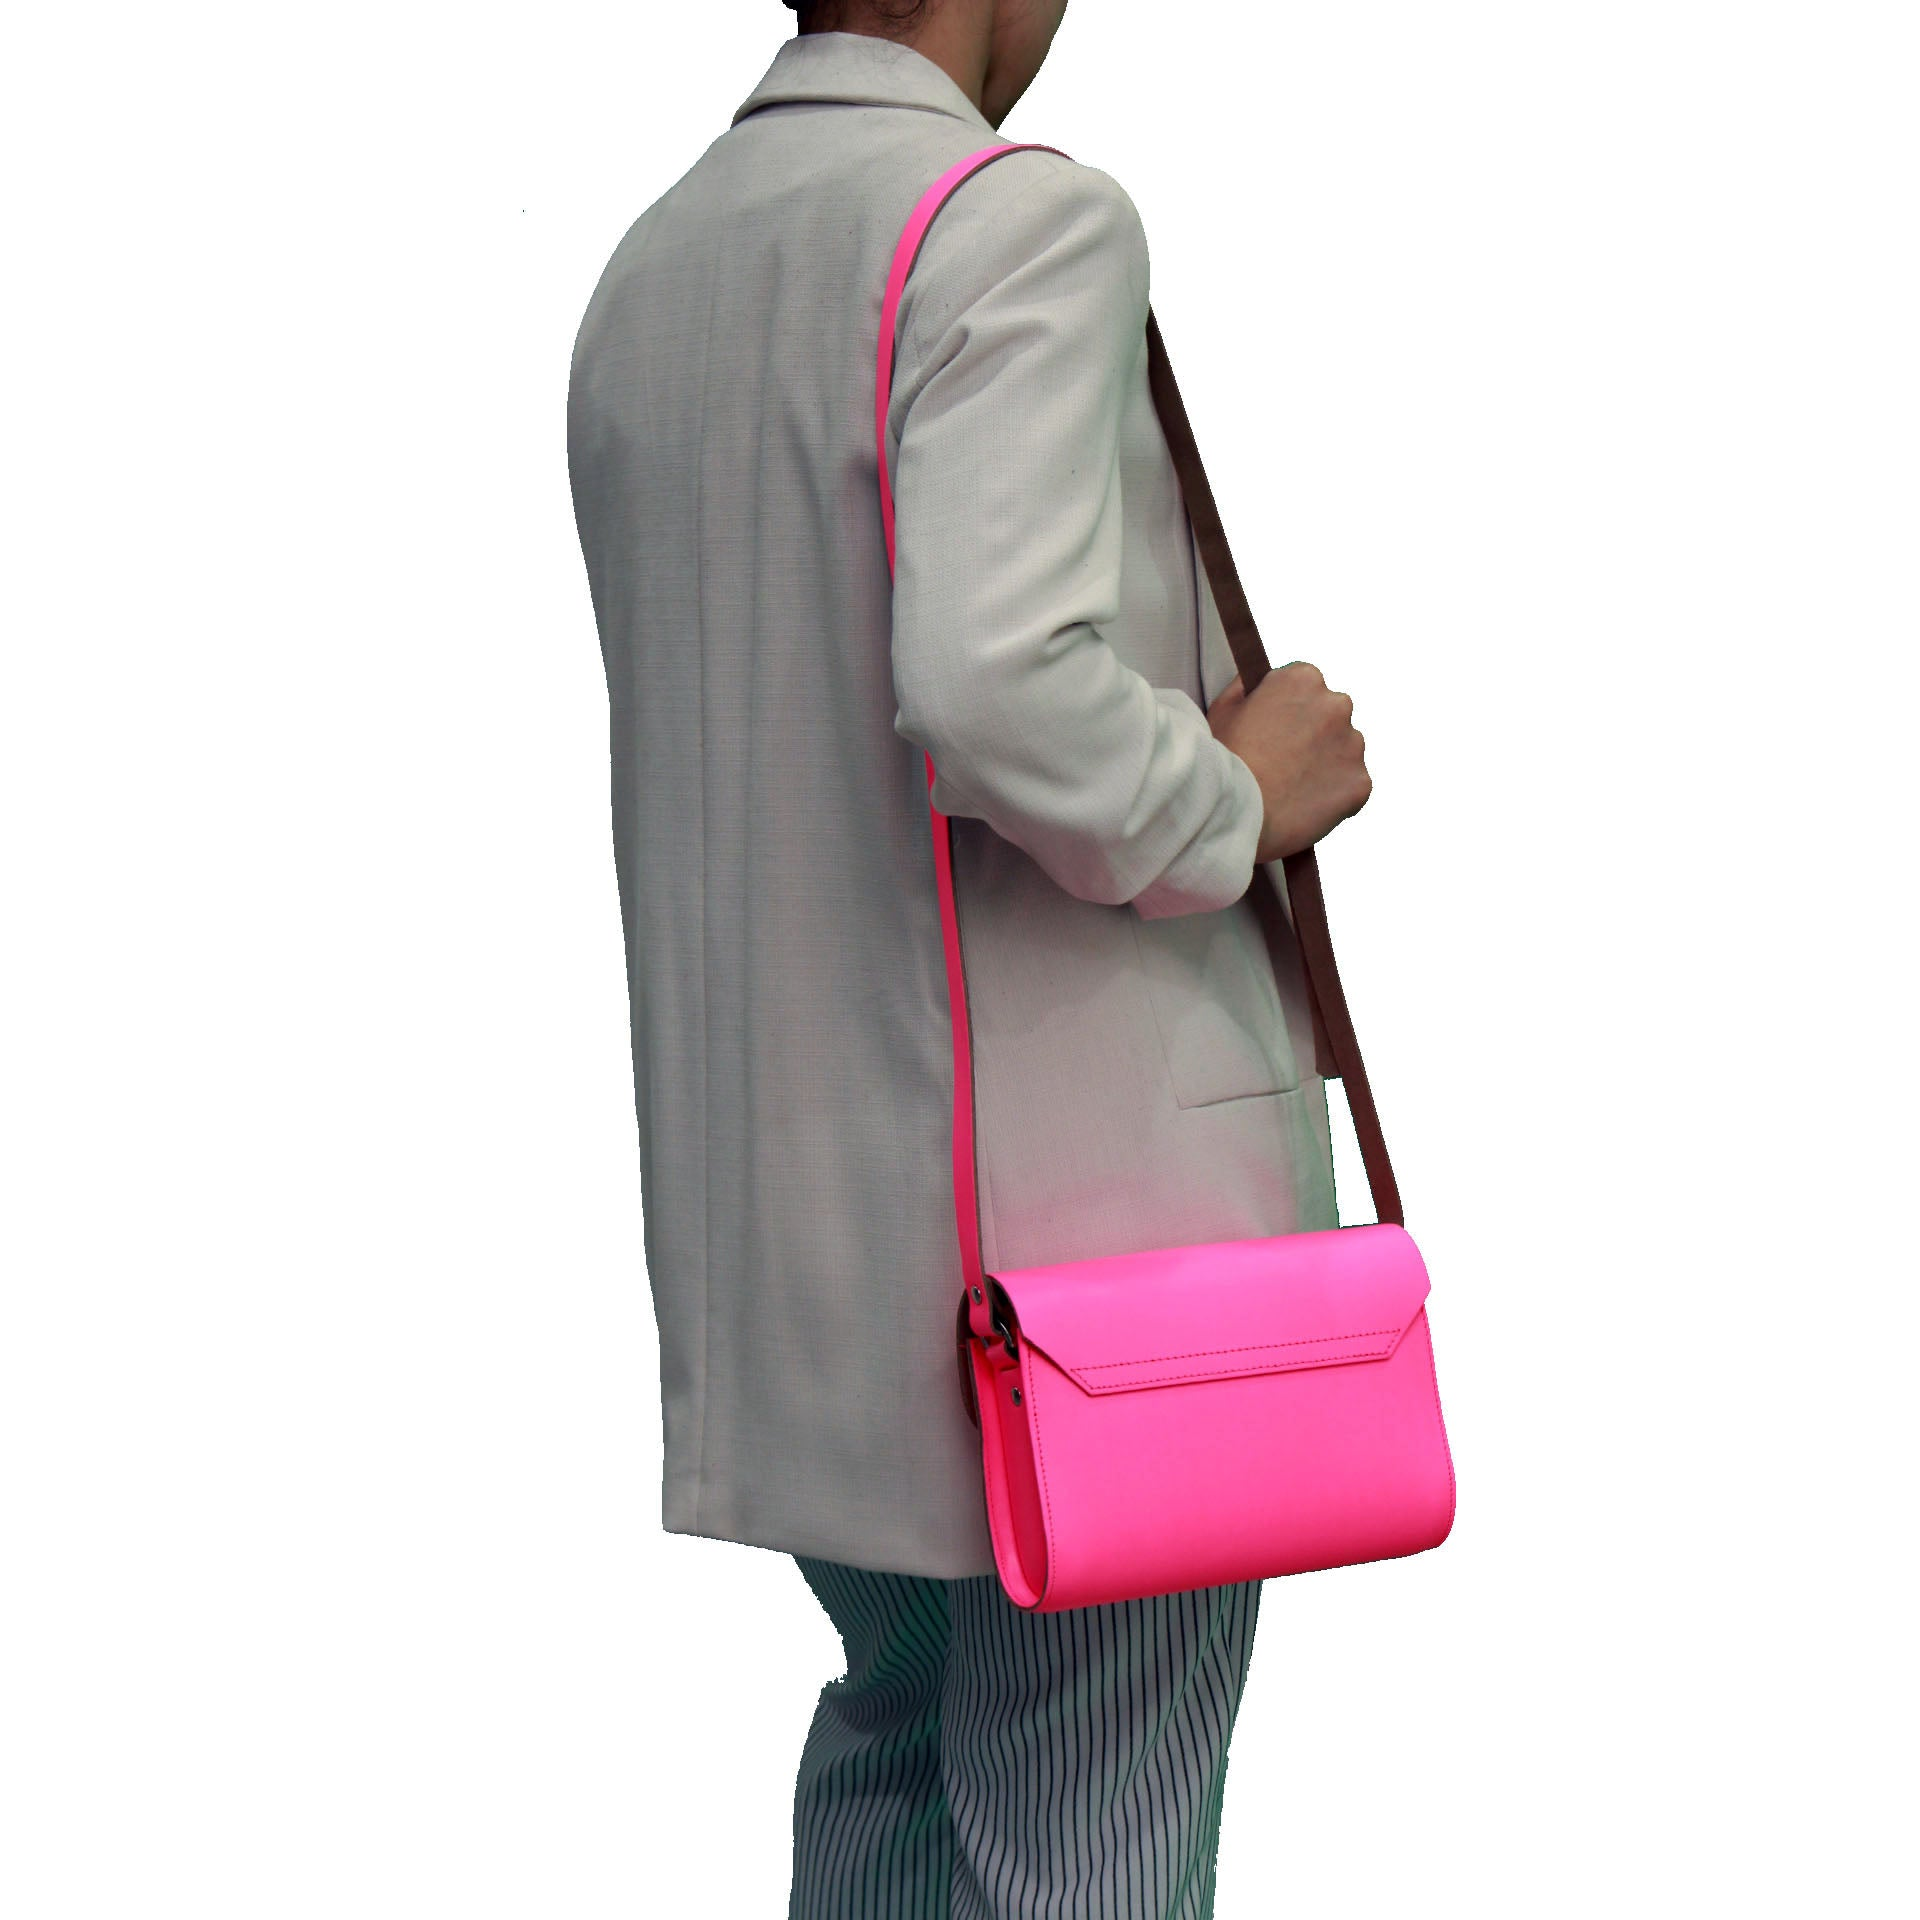 Fluorescent (neon) pink Handmade Womens Small Leather Satchel Cross Body Classic Handbag. Can be personalised with initials.